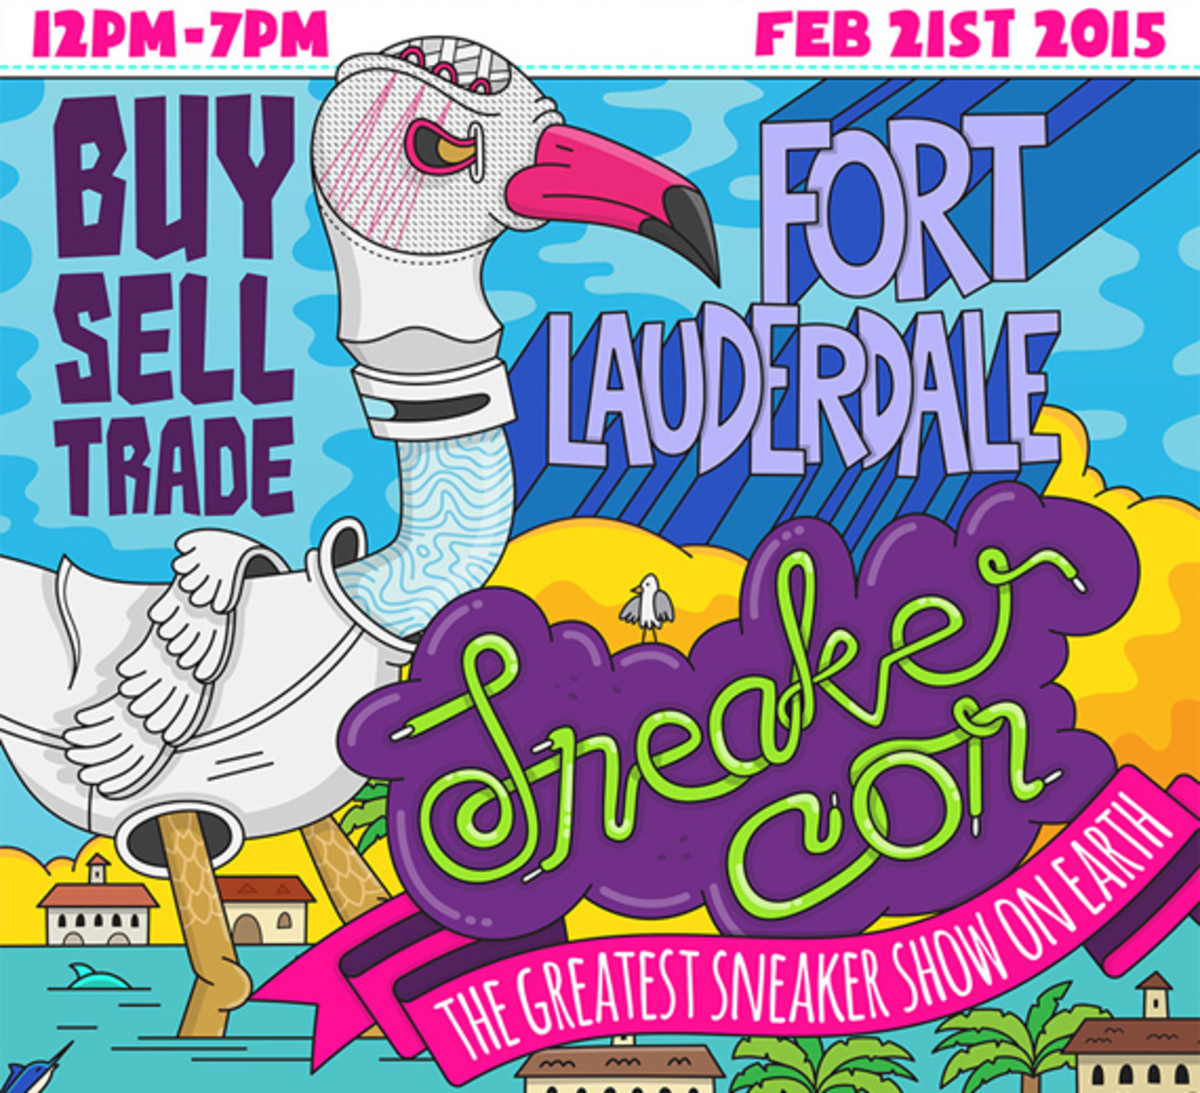 sneaker-con-fort-lauderdale-february-2015-a